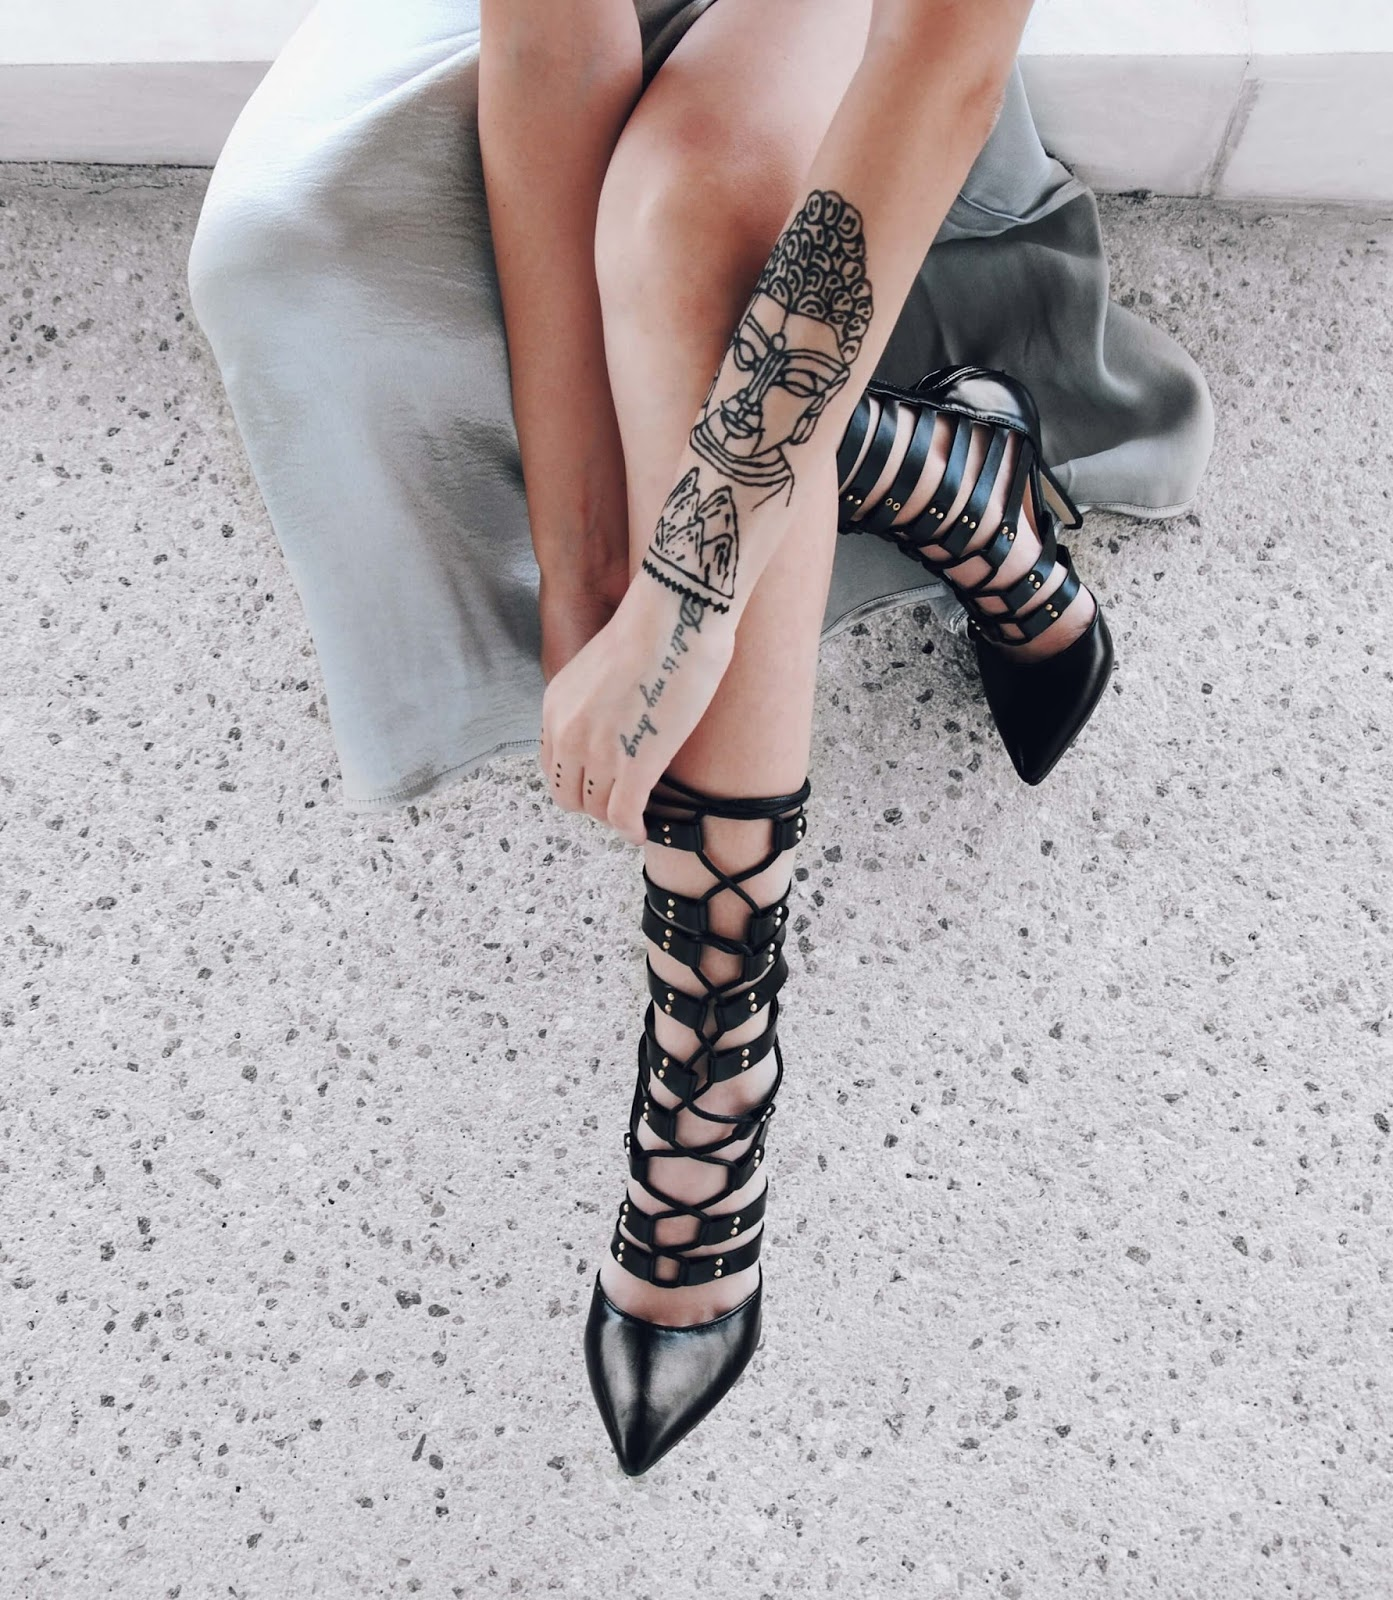 lace up heels tattoo buddha